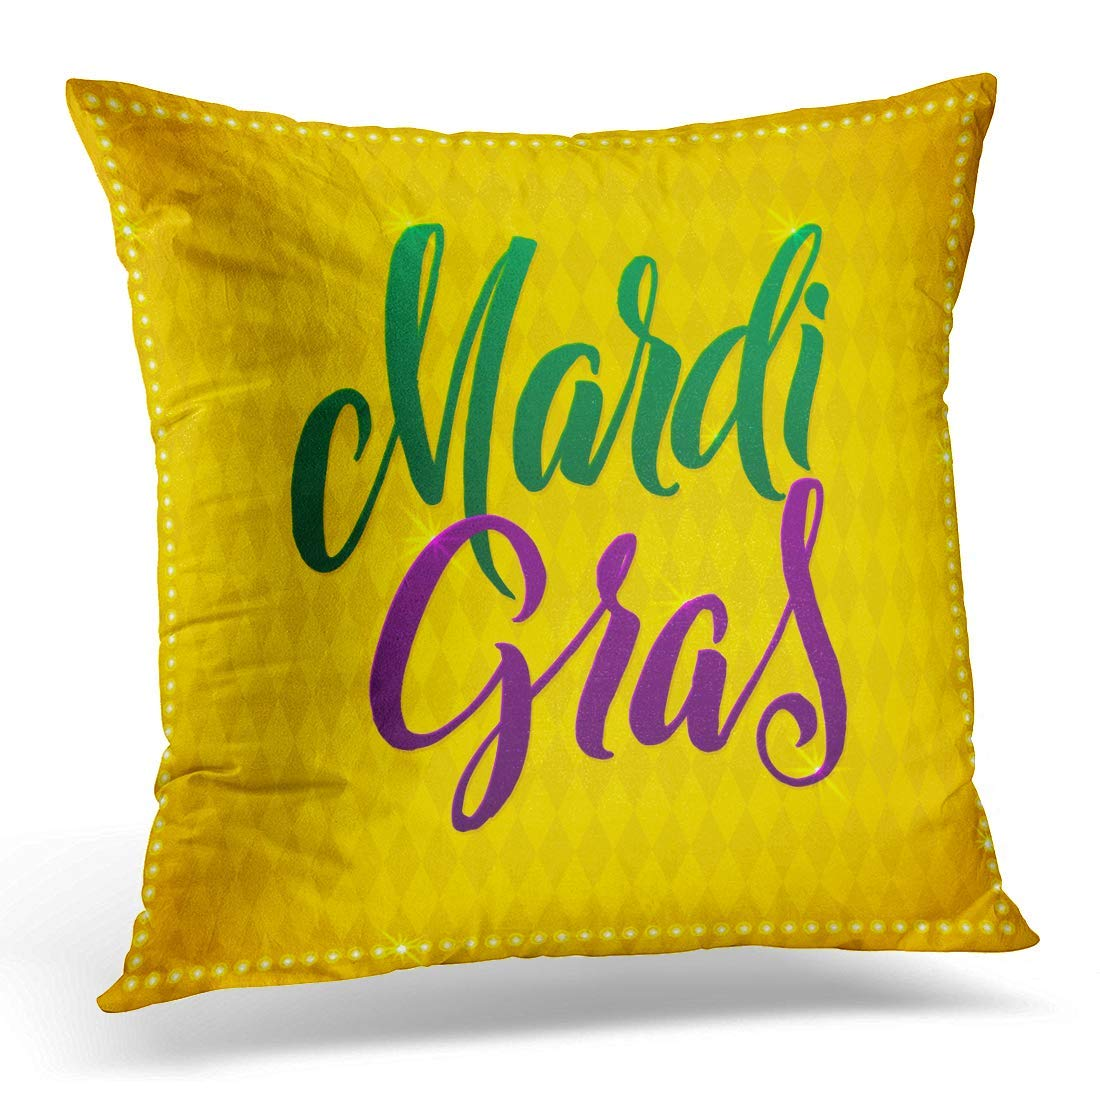 USART Colorful Happy Mardi Gras Carnival Calligraphy Calligraphic Yellow Treatment Gold Pillow Case Pillow Cover 20x20 inch